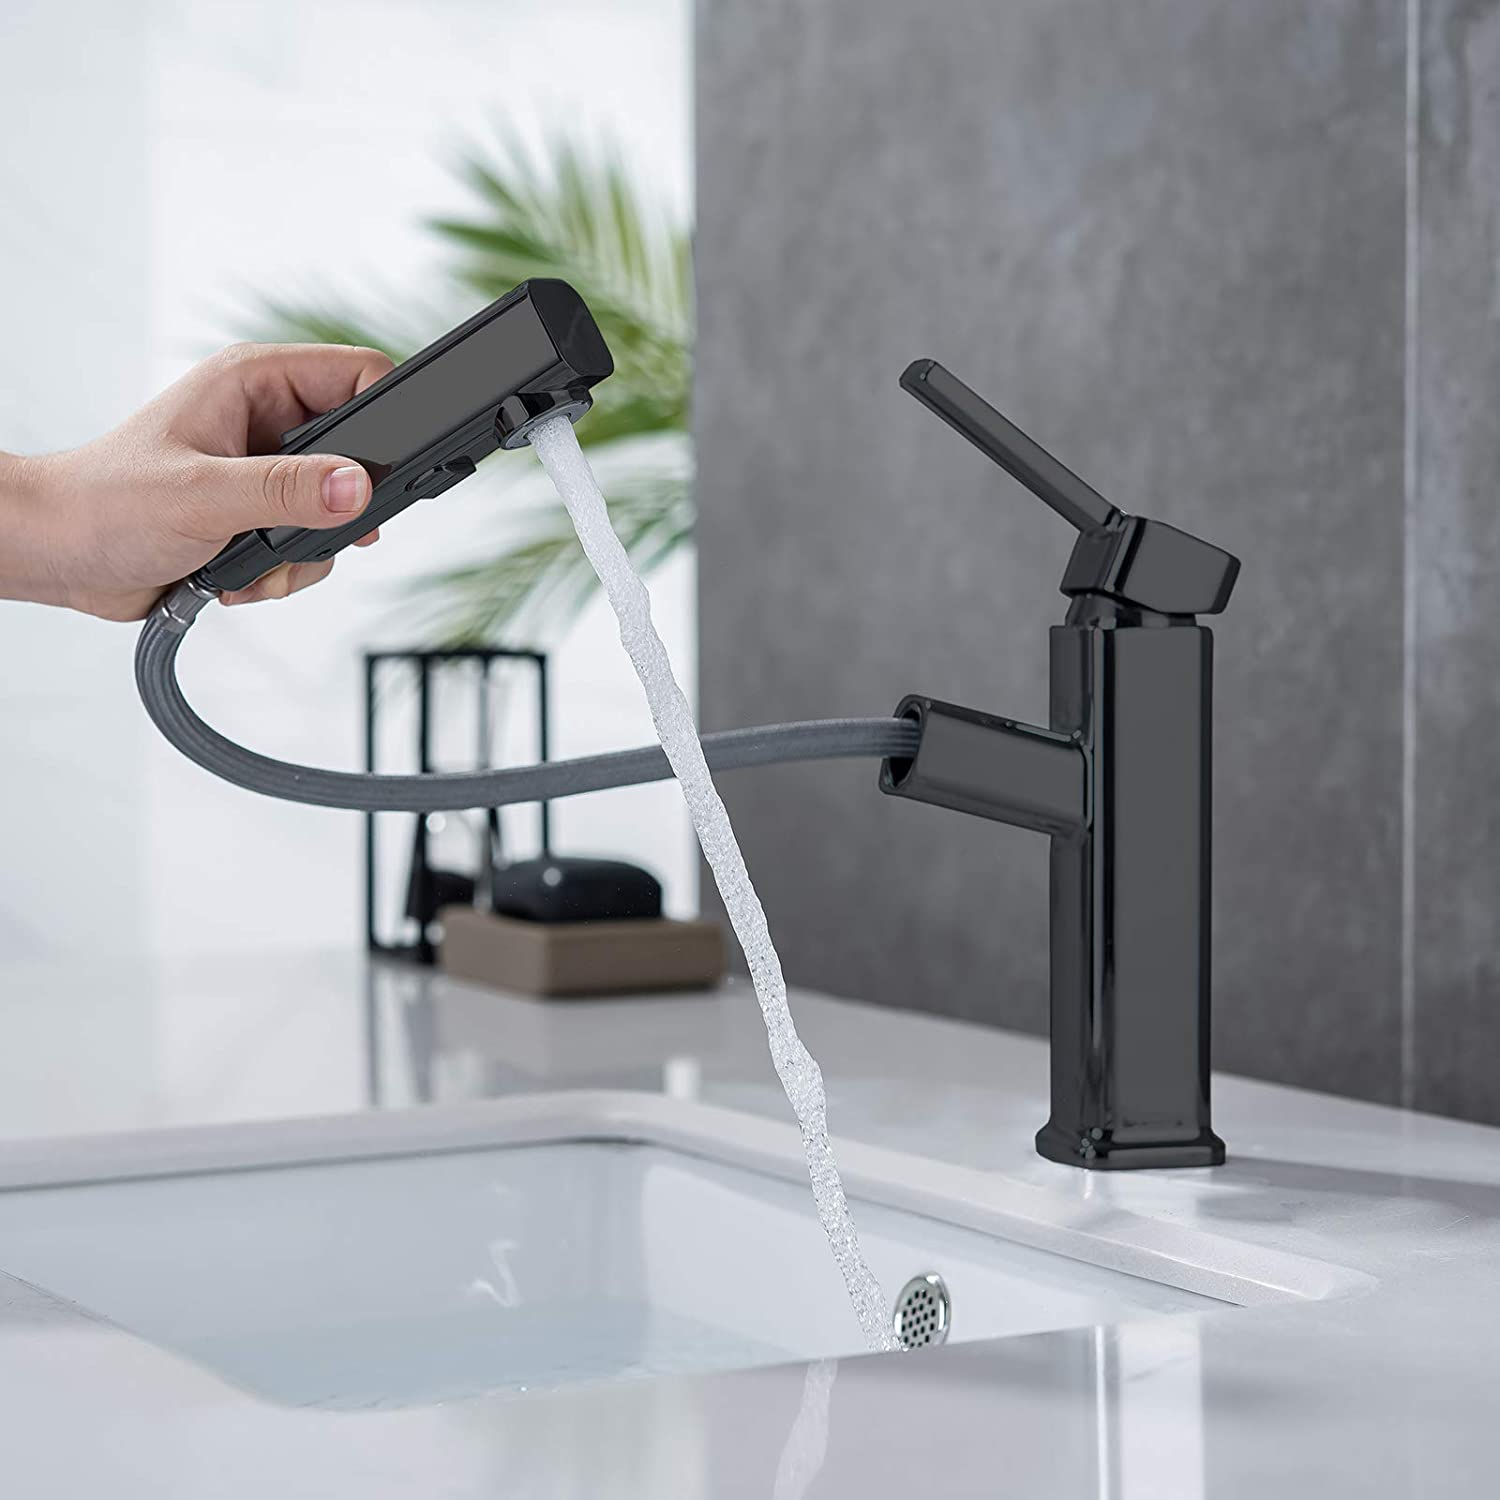 bathroom sink faucet single handle brushed nickel basin mixer tap for hot and cold water sink faucet commercial stainless steel faucet sink faucet